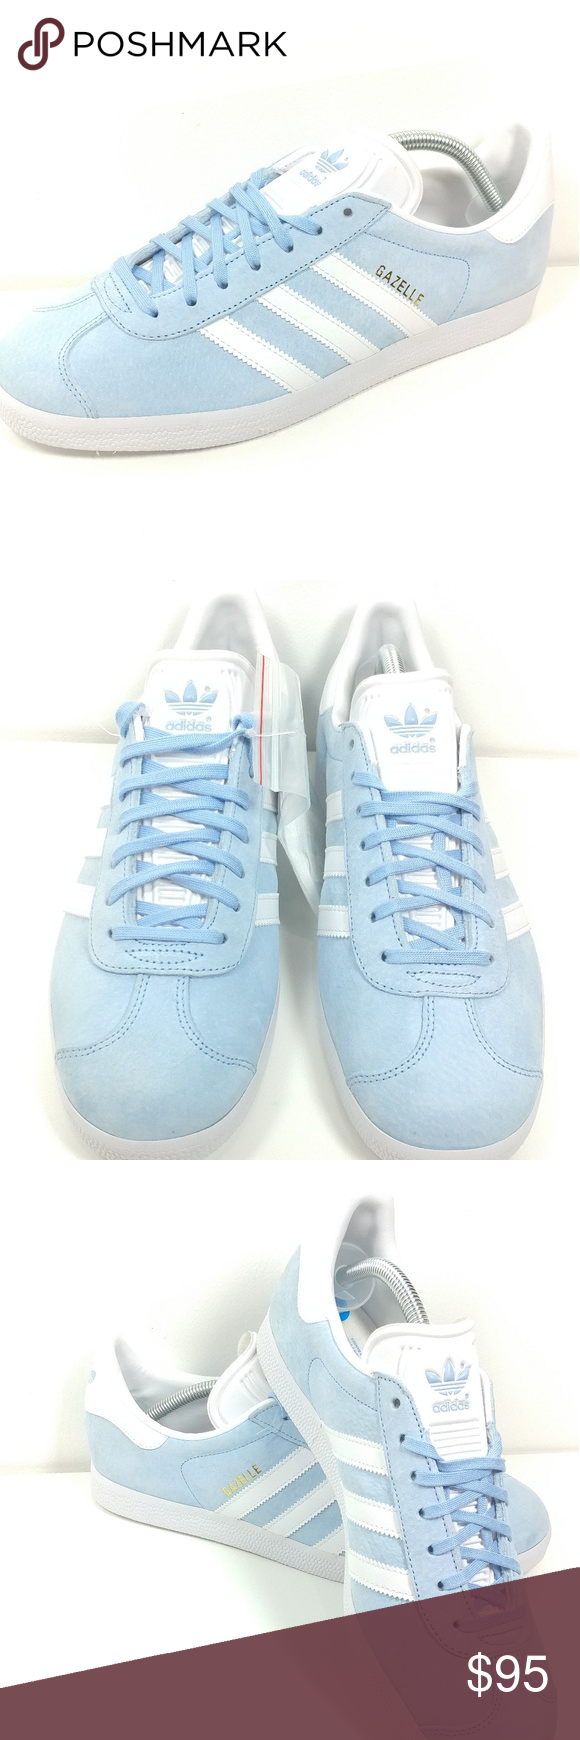 the latest 58424 ac388 Adidas Gazelle sky pale bluegold BB5481 NEW Vintage swagger, suede  construction meet